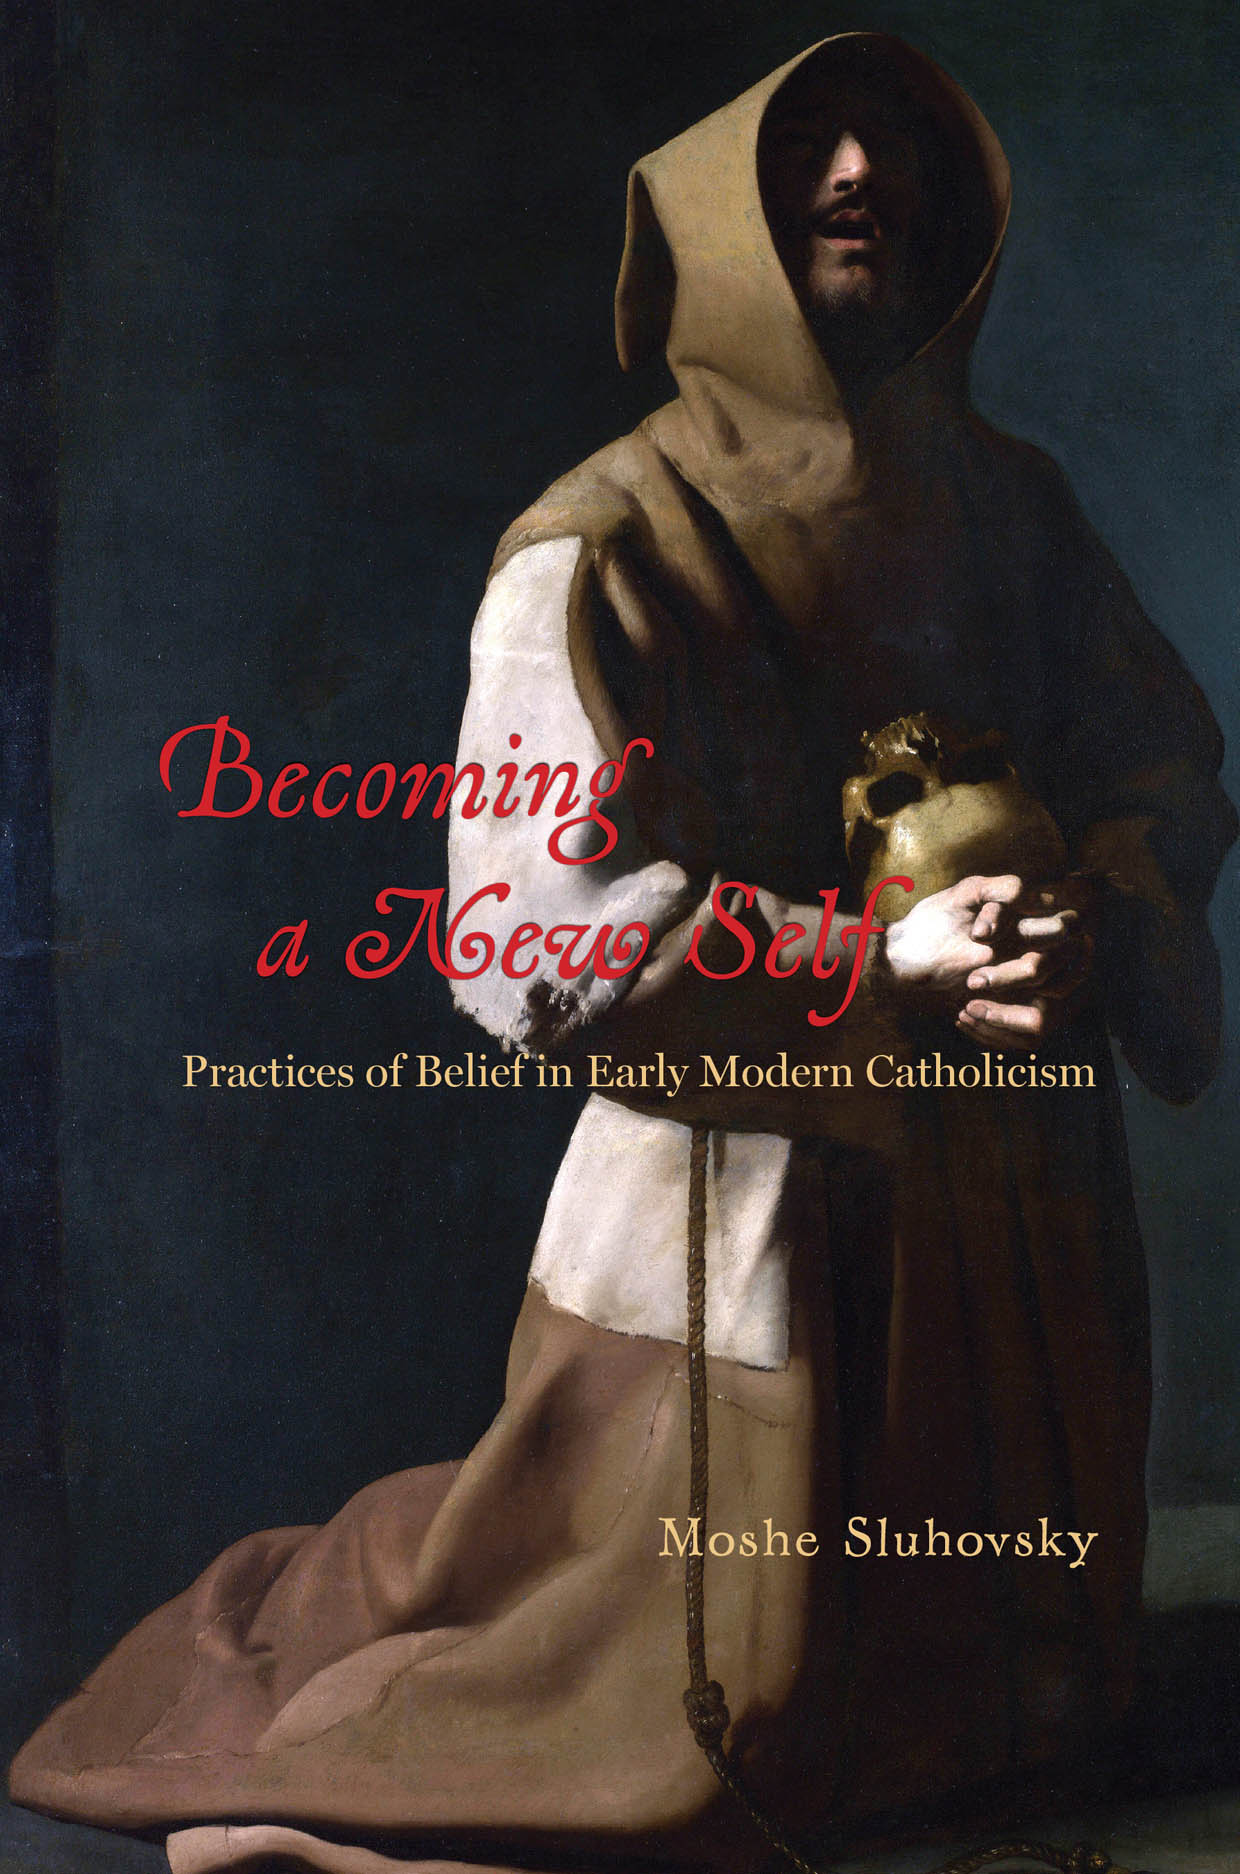 Becoming a New Self: Practices of Belief in Early Modern Catholicism